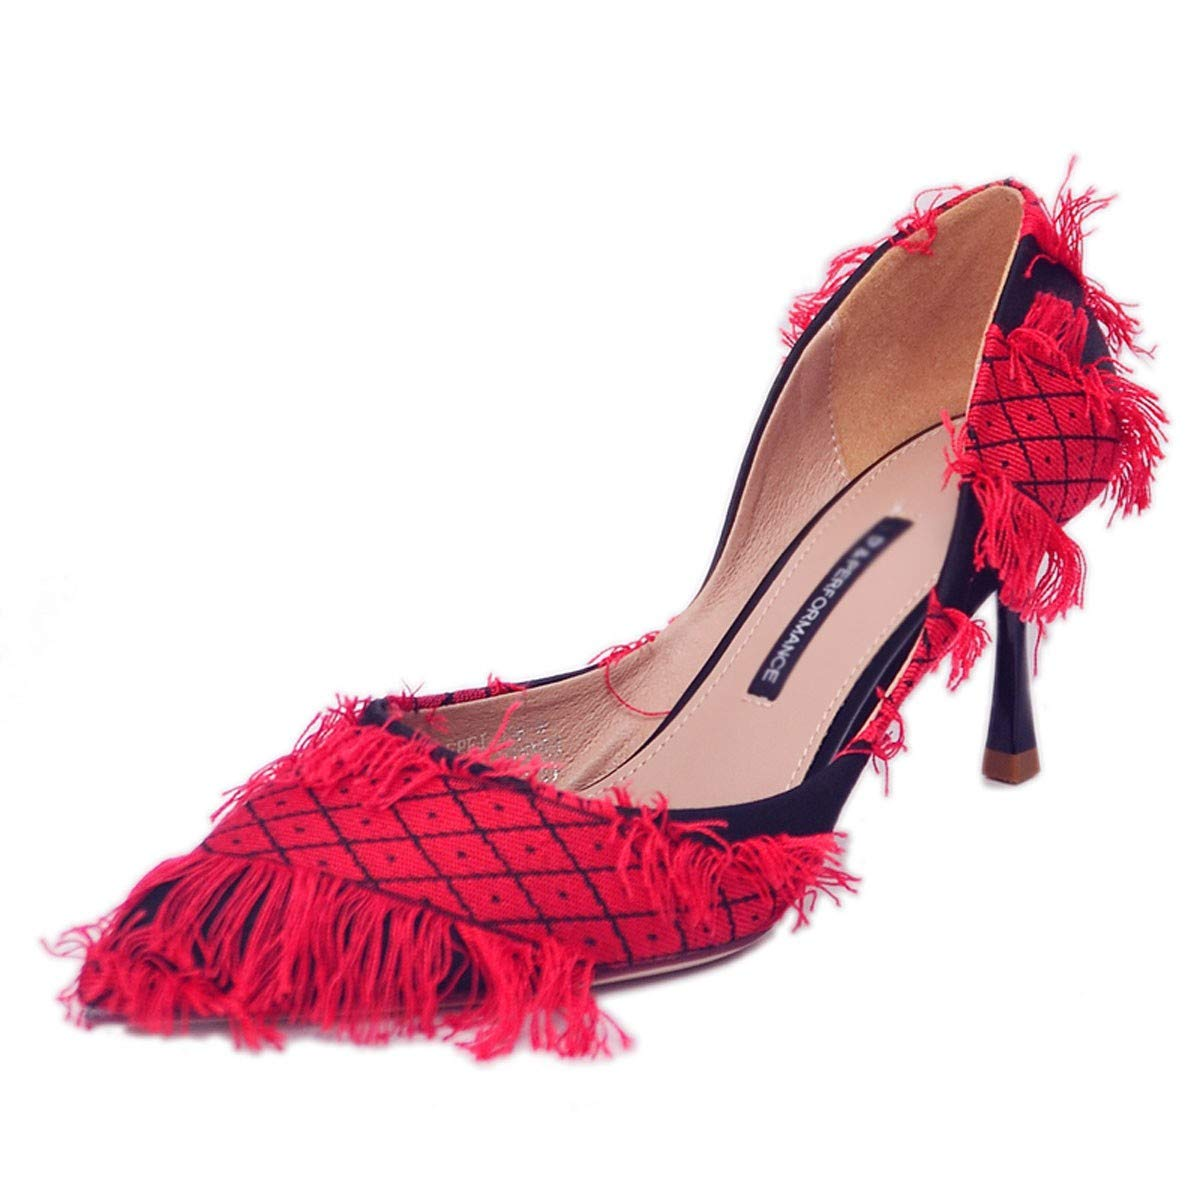 GTVERNH Womens Shoes//Fringed Pointed 7Cm High Heel Shoes Thin Heel Side Empty Womens Shoes Banquet Shoes Fashion.